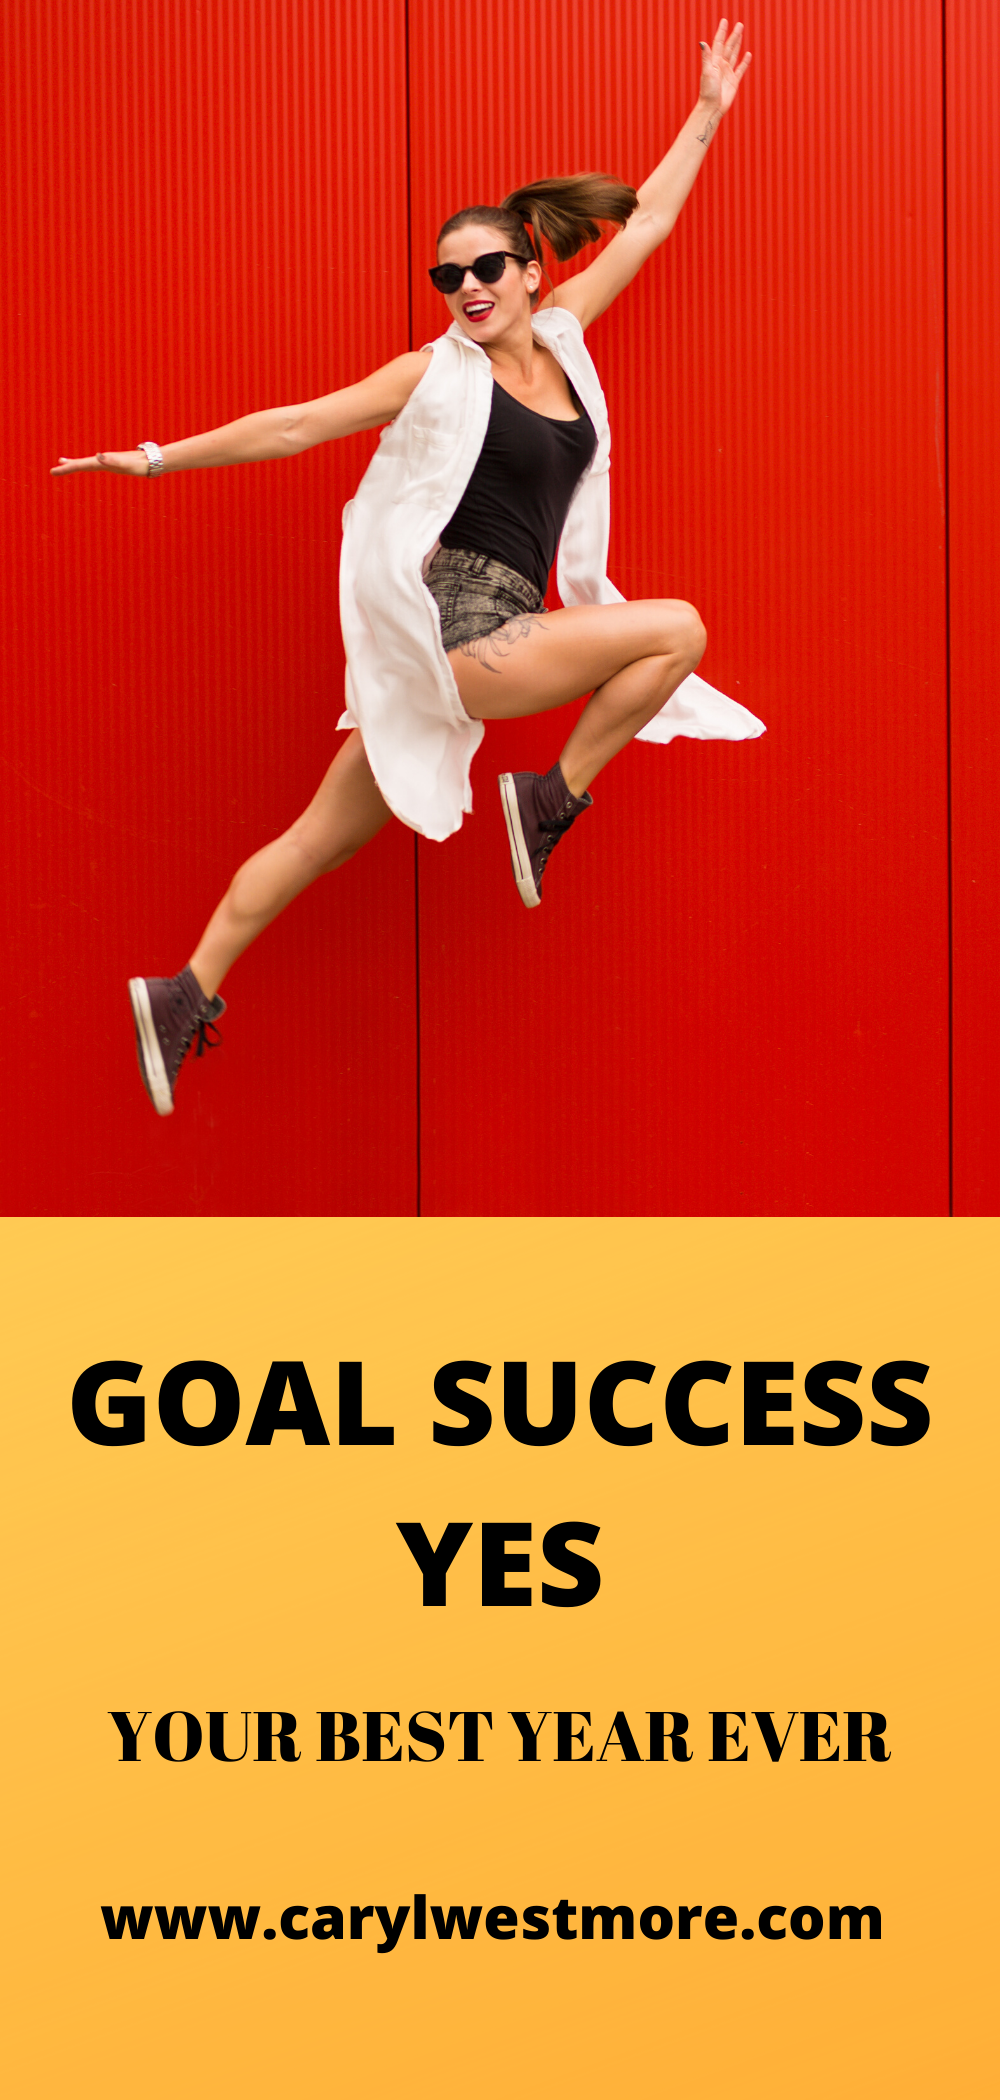 GOAL SUCCESS JUMPING FOR JOY